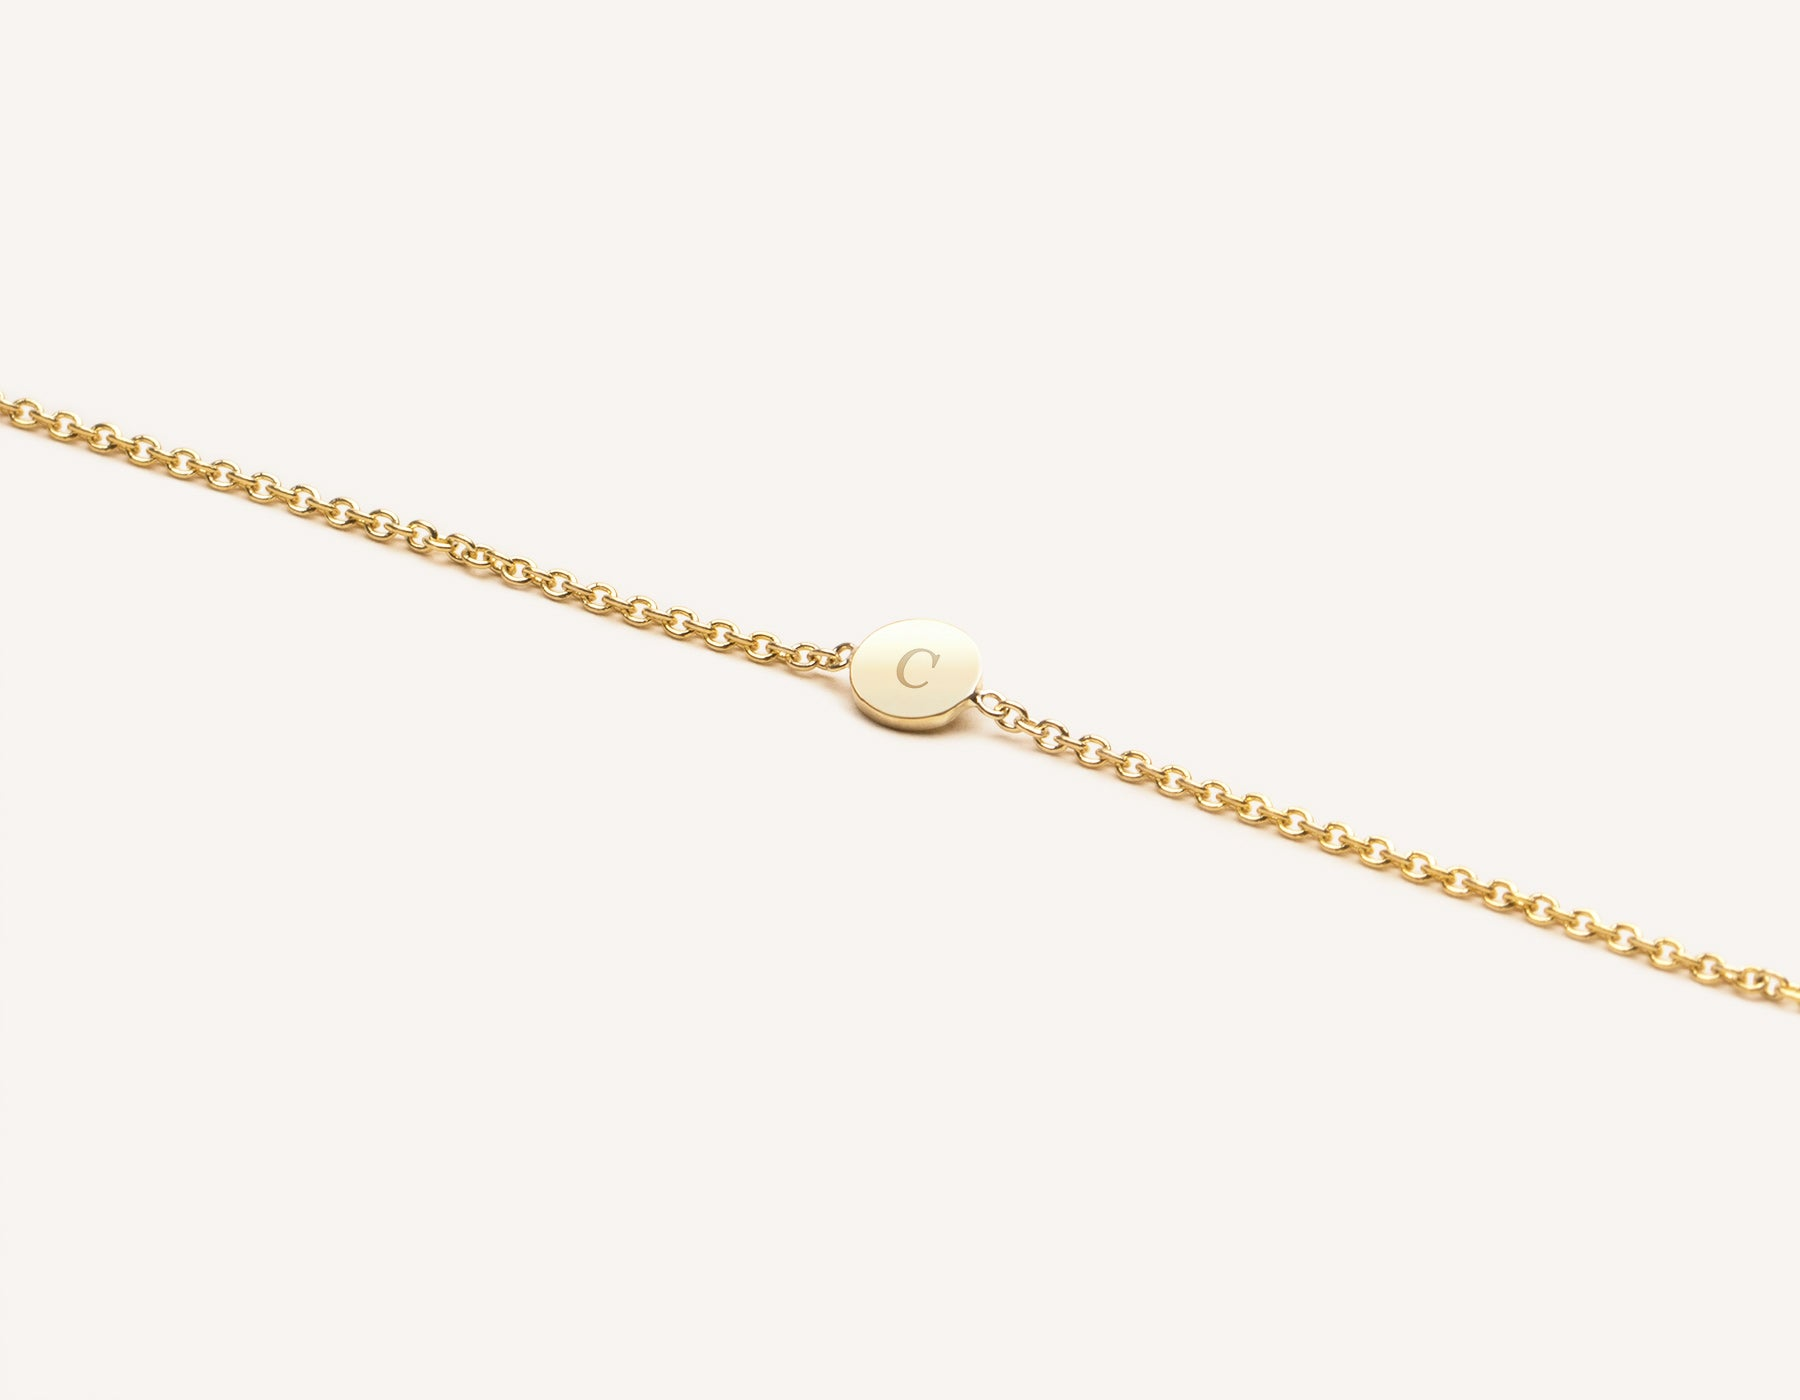 Modern minimalist Initial Bracelet 14k solid gold disk on simple chain Vrai & Oro, 14K Yellow Gold